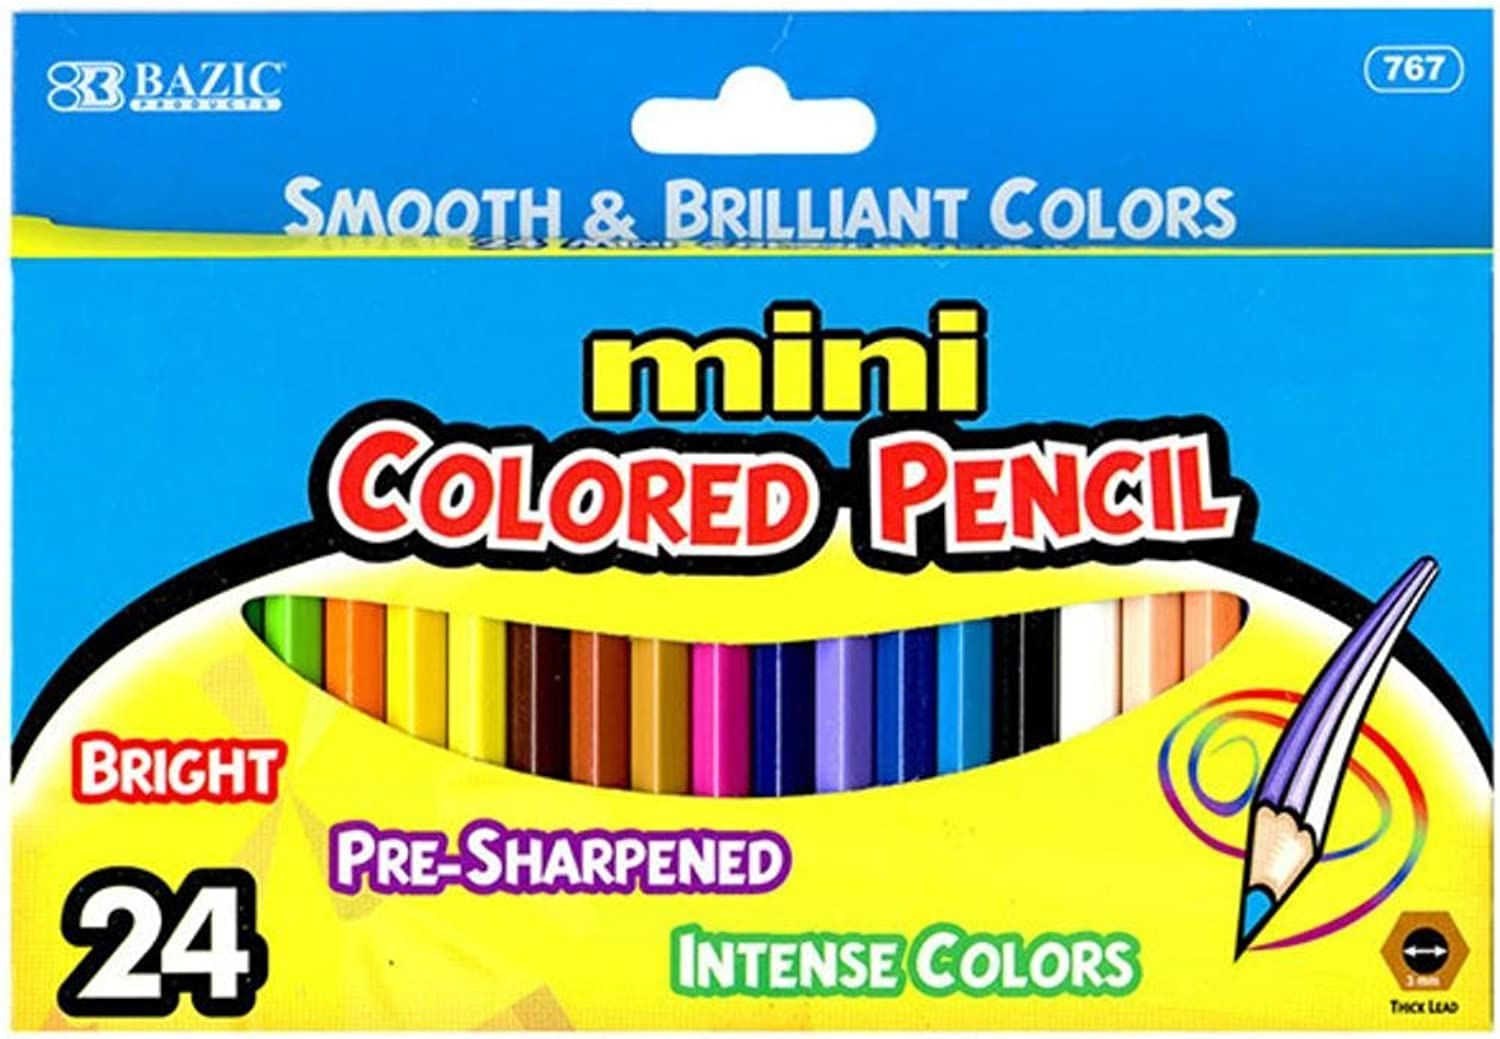 Bazic 76724 24 Mini color Pencil Pack of 24